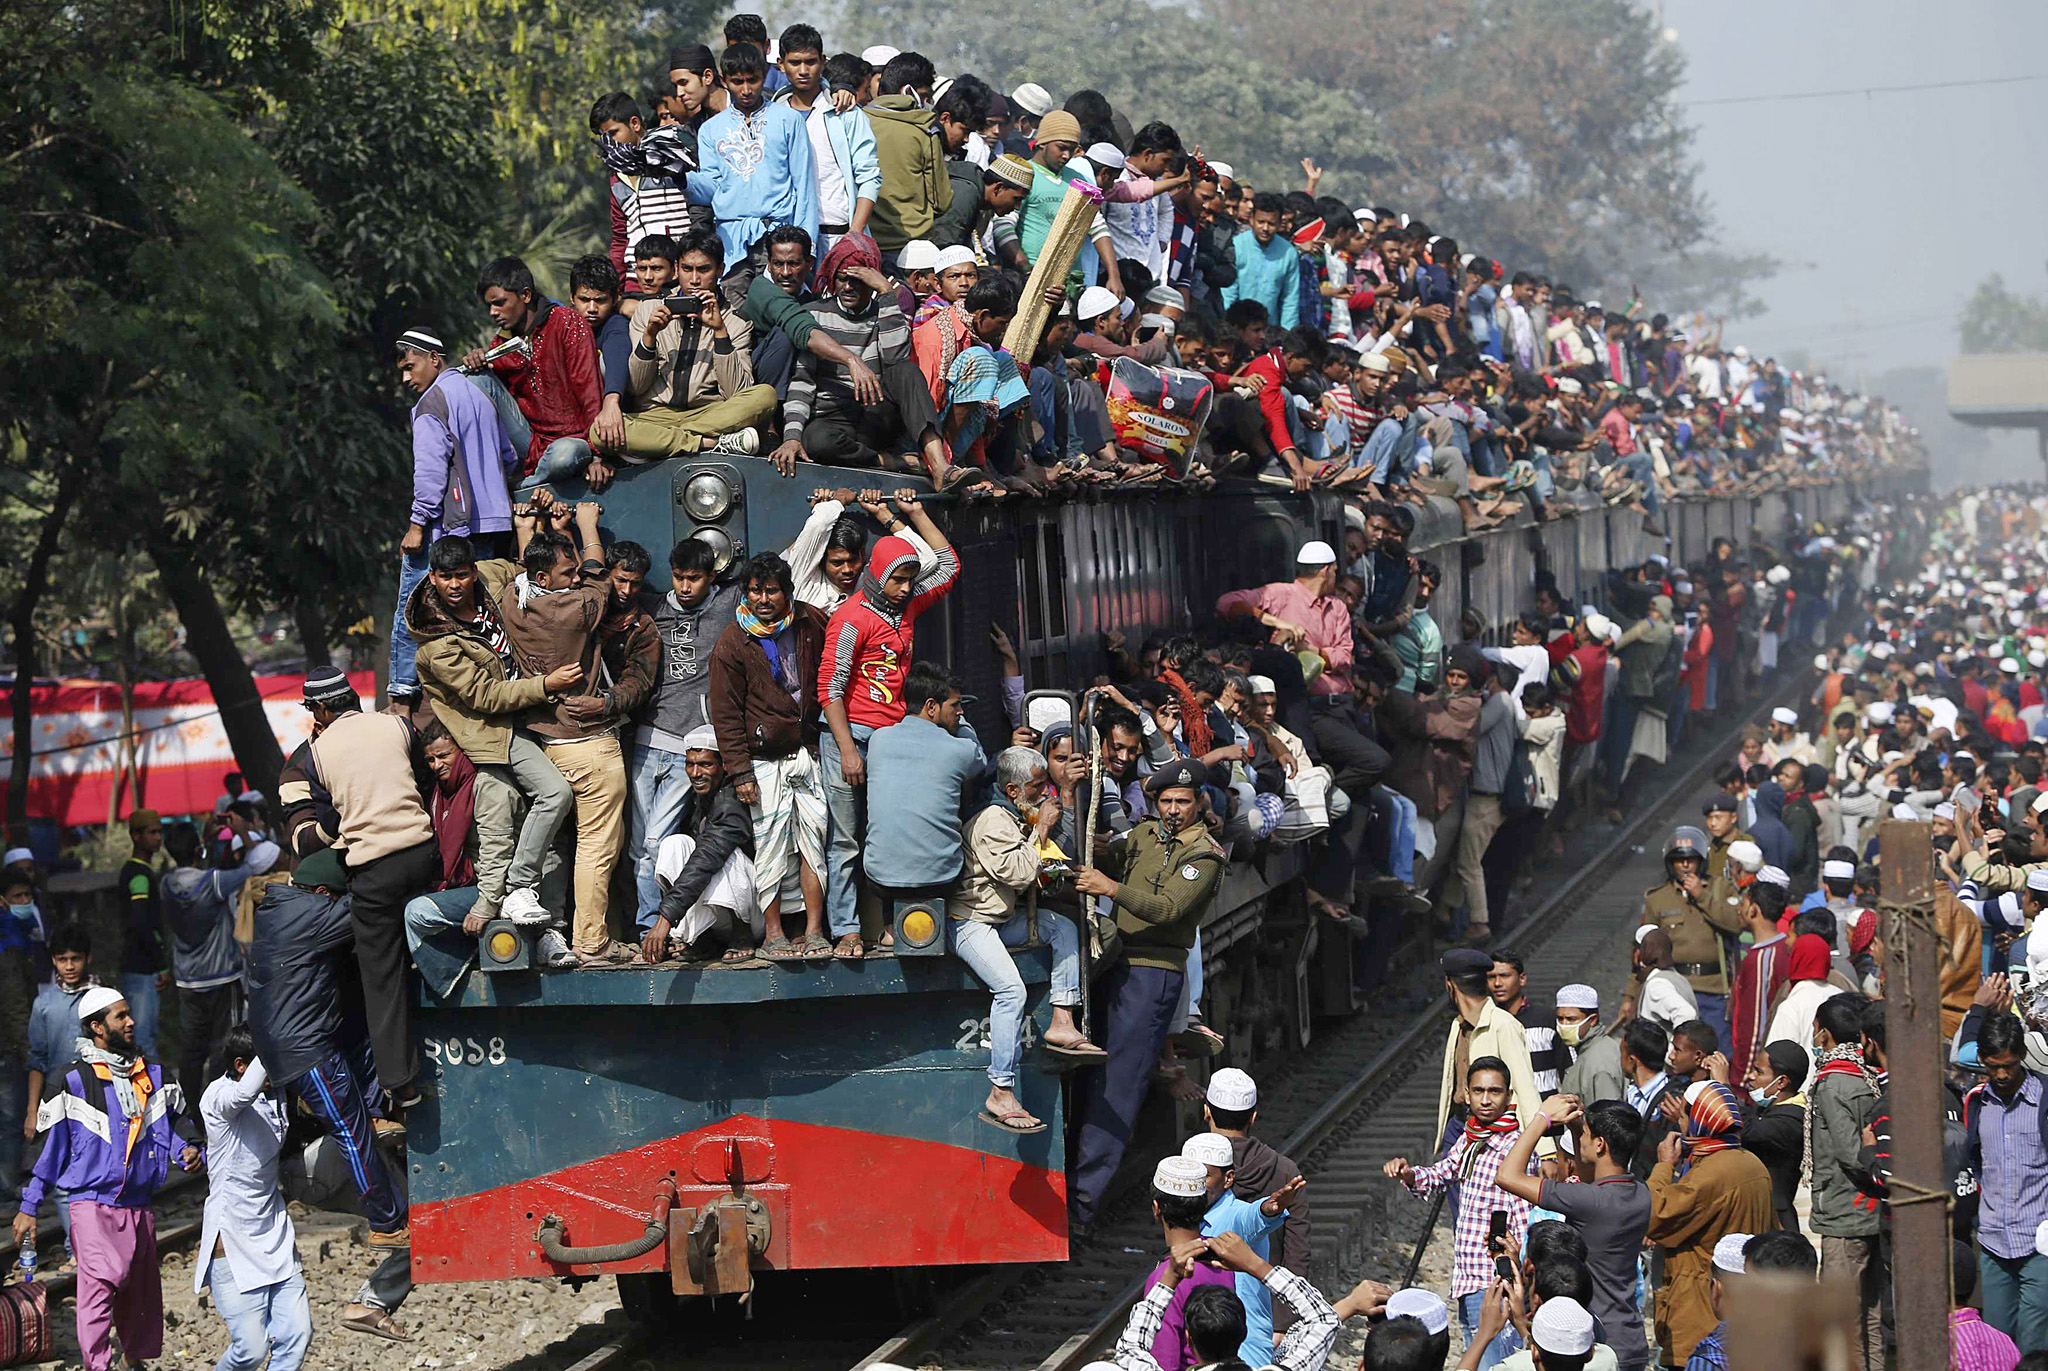 Devotees ride on the roof of a train as they return to the city after attending the final prayers on the first phase of Bishwa Ijtema in Dhaka...Devotees ride on the roof of a train as they return to the city after attending the final prayers on the first phase of Bishwa Ijtema in Dhaka January 11, 2015. Hundreds of thousands of pilgrims congregated in the Bangladeshi capital Dhaka as the first phase of this year's Bishwa Ijtema, one of the biggest Islamic gatherings in the world after the Haj in Saudi Arabia, came to an end. Picture taken January 11, 2015.